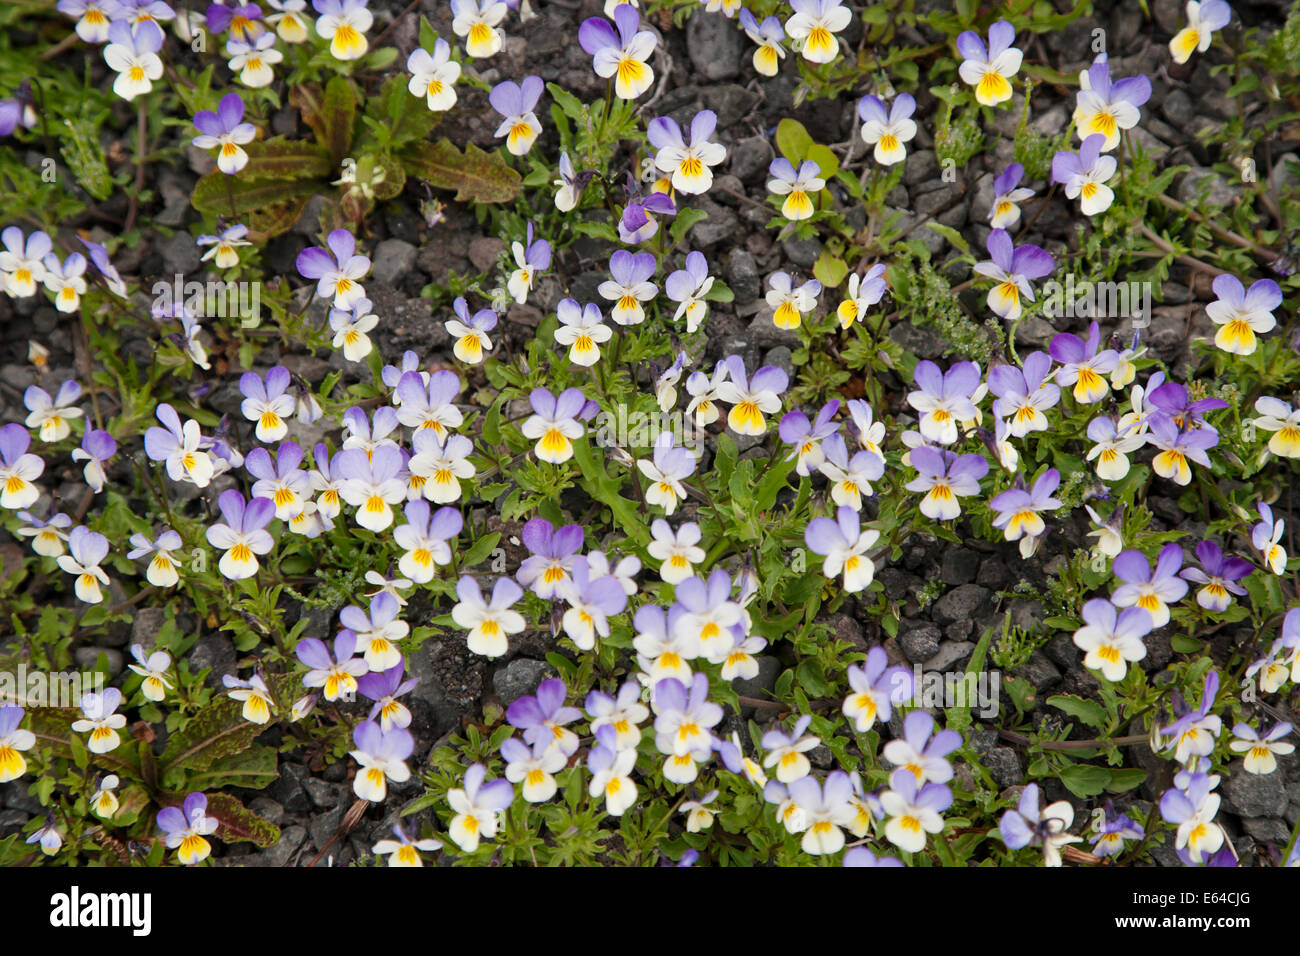 Wild Pansy Viola tricolor Iceland PL002233 - Stock Image